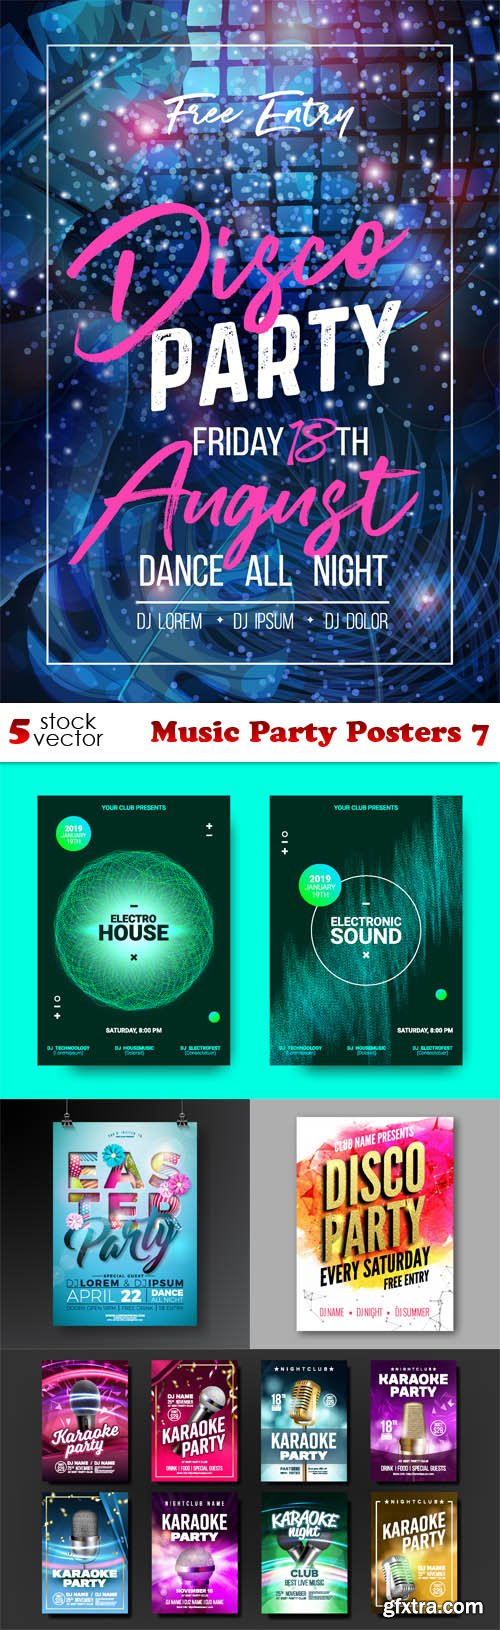 Vectors - Music Party Posters 7